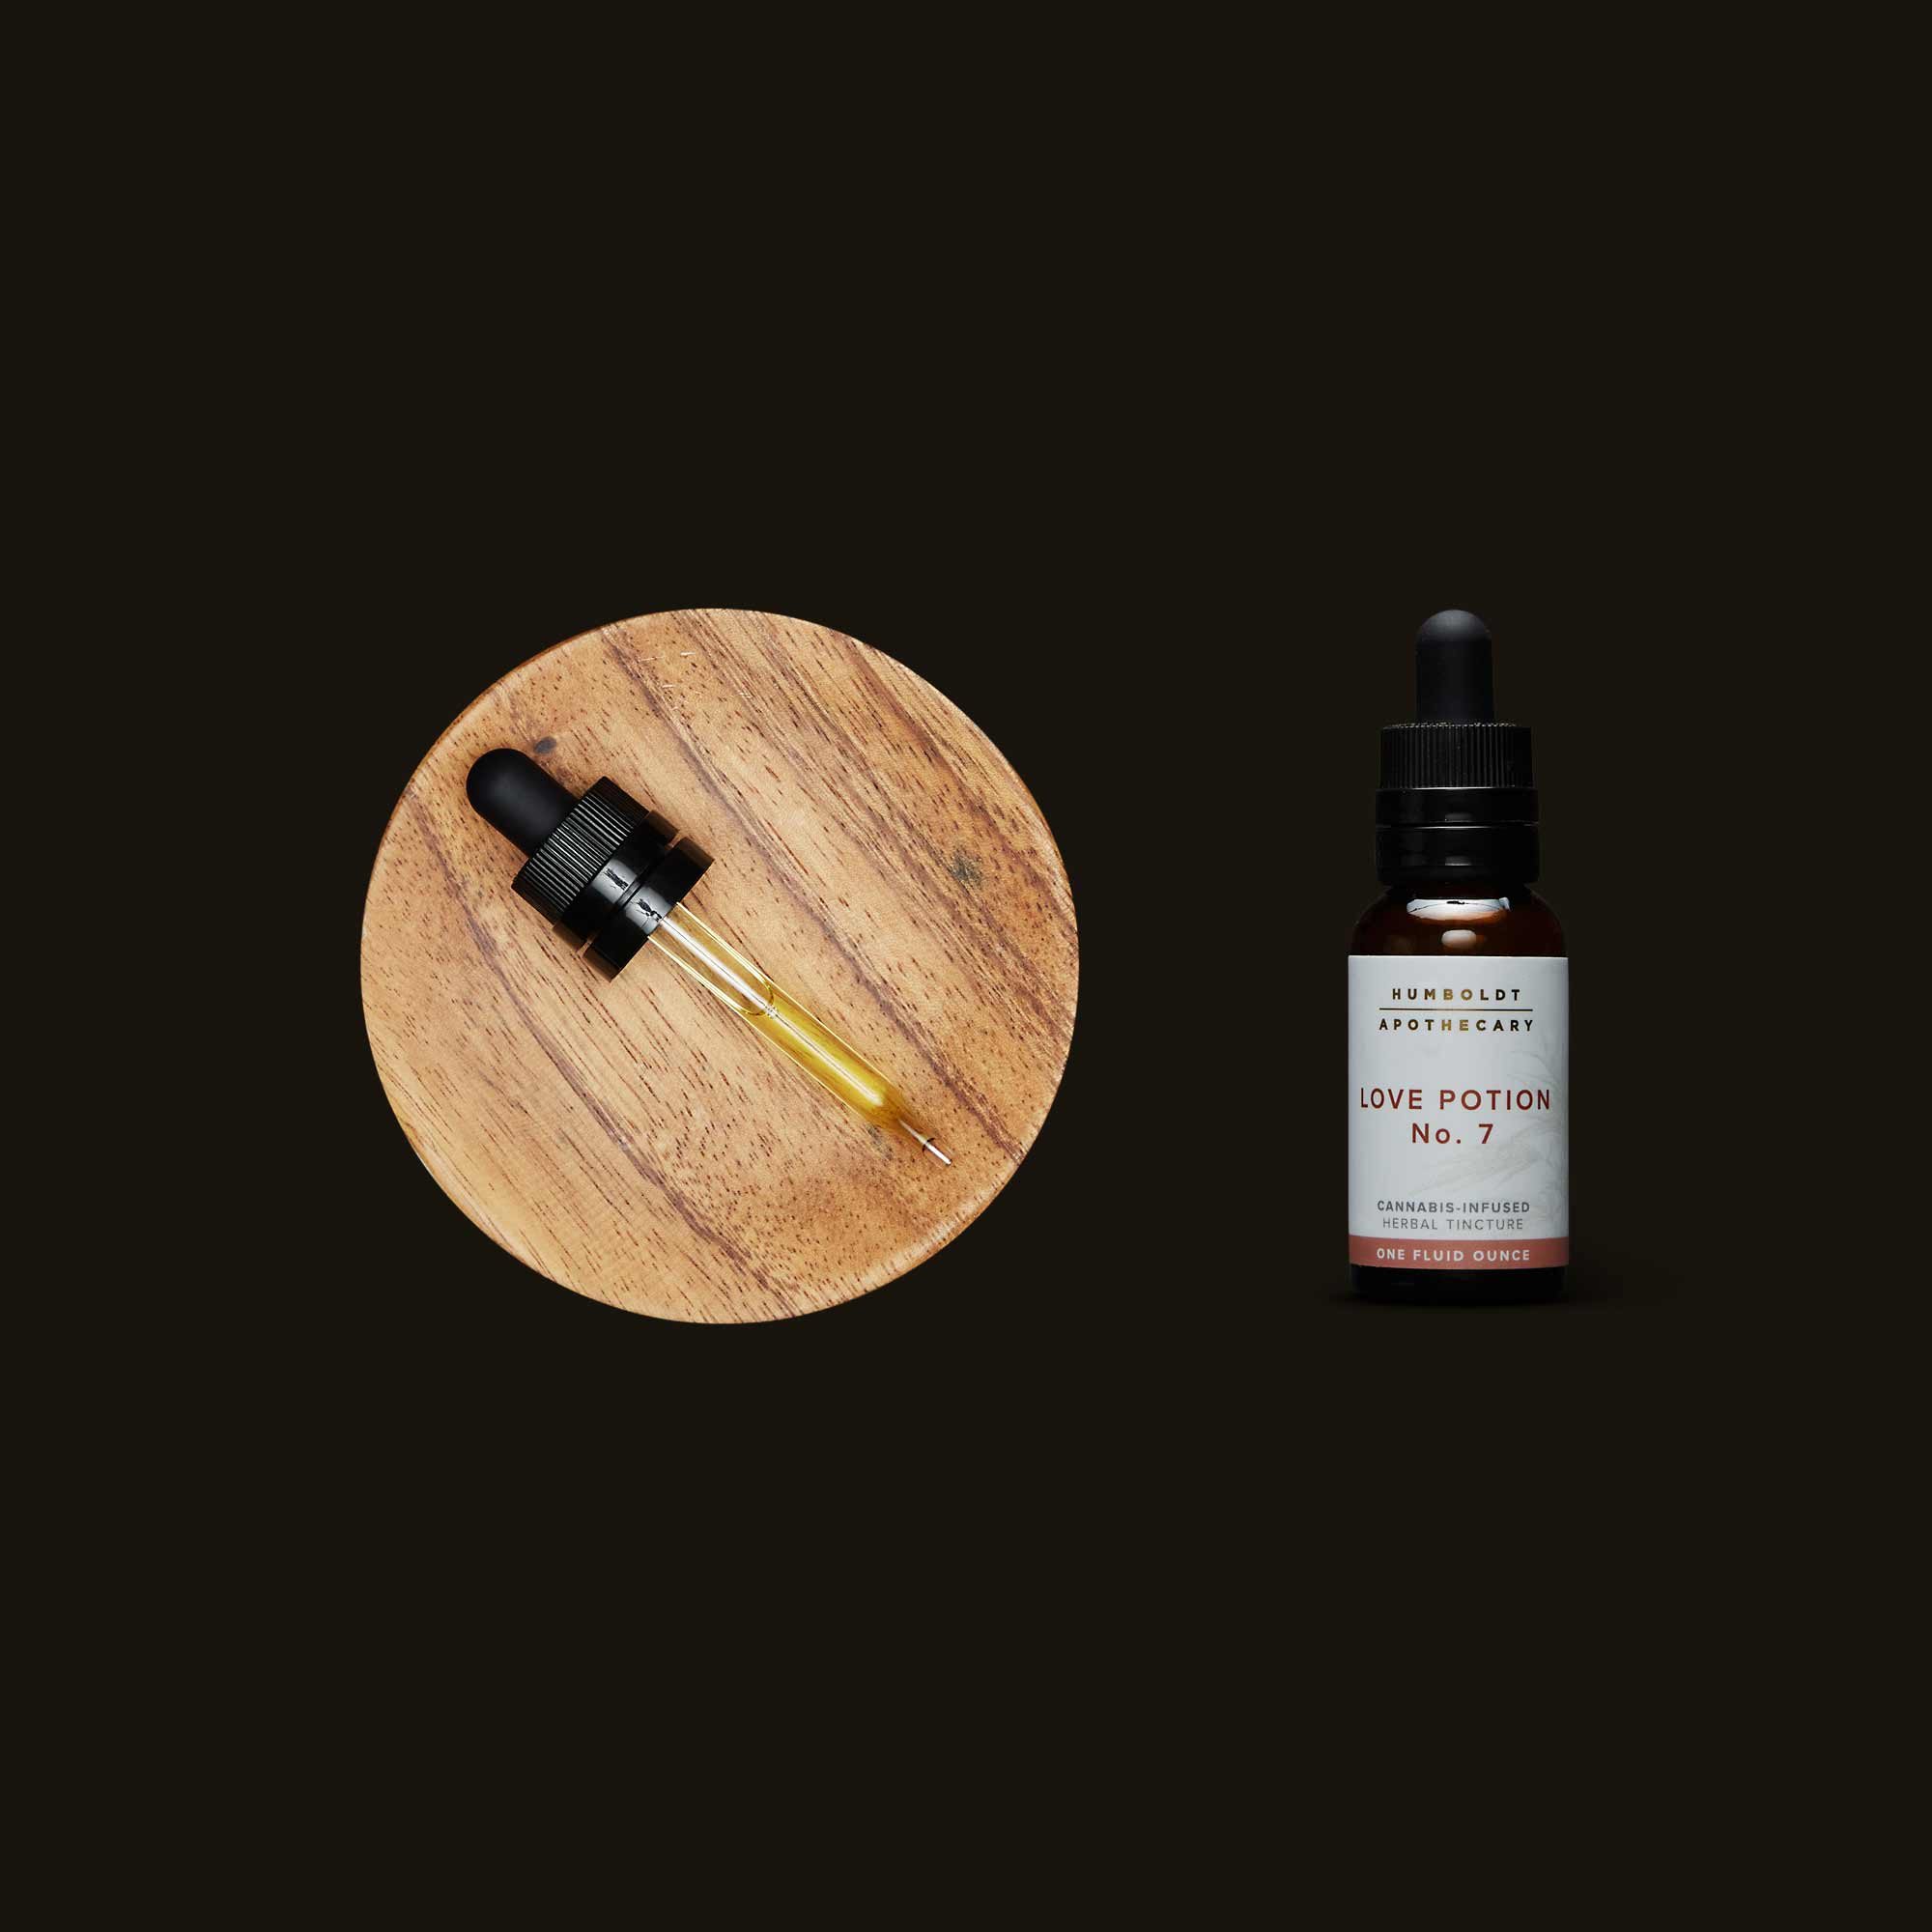 Humboldt Apothecary Love Potion #7